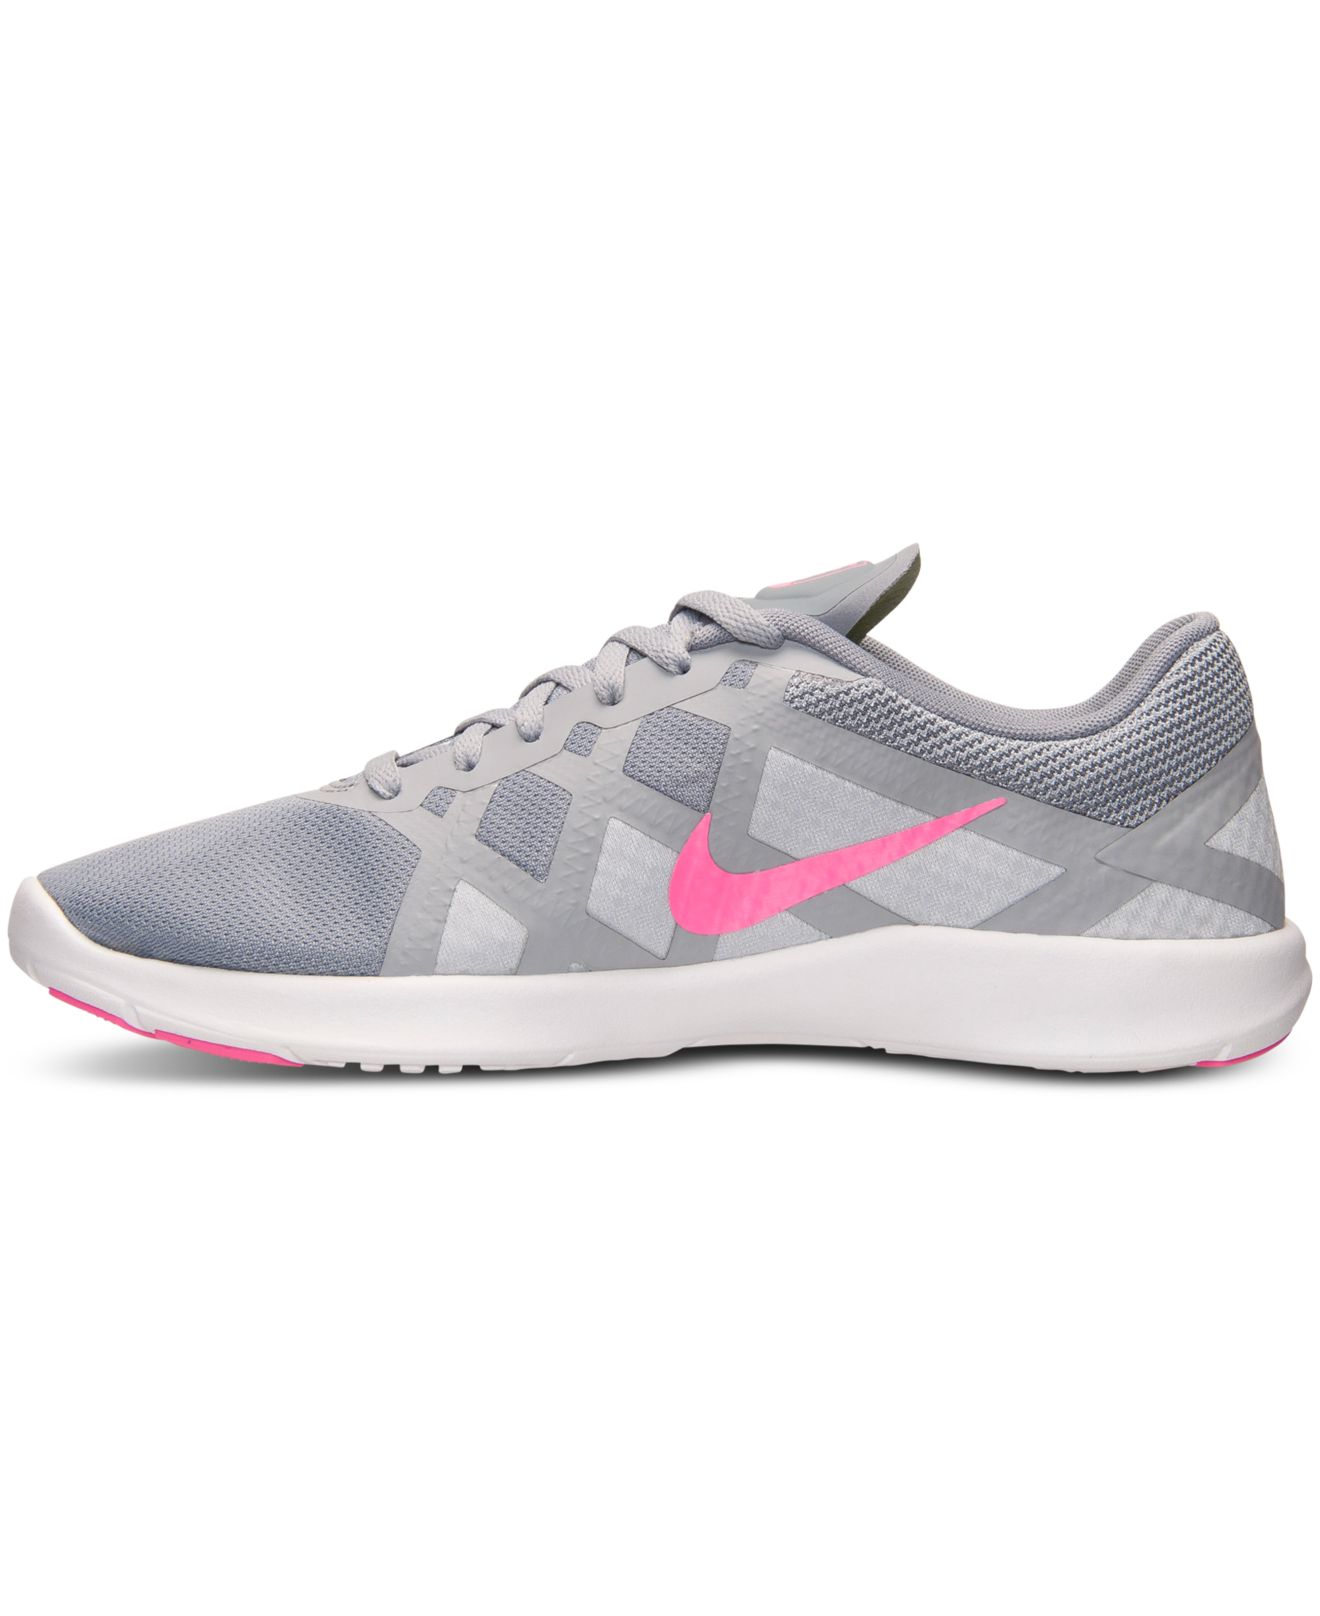 a92b7fa3f103 Lyst - Nike Women s Lunar Lux Tr Training Sneakers From Finish Line ...